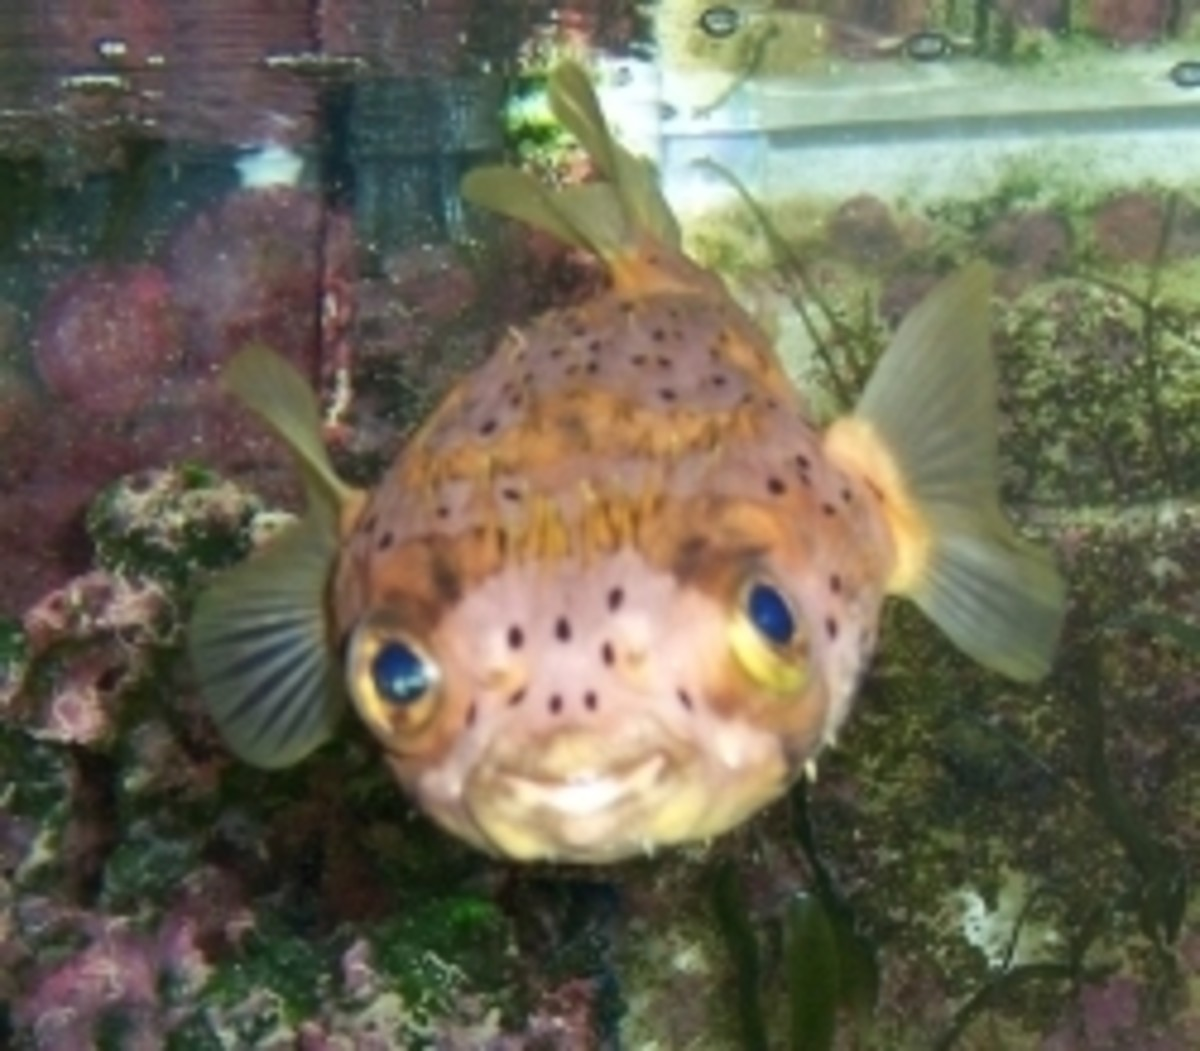 Porky, the porcupine puffer fish smiles for the camera.